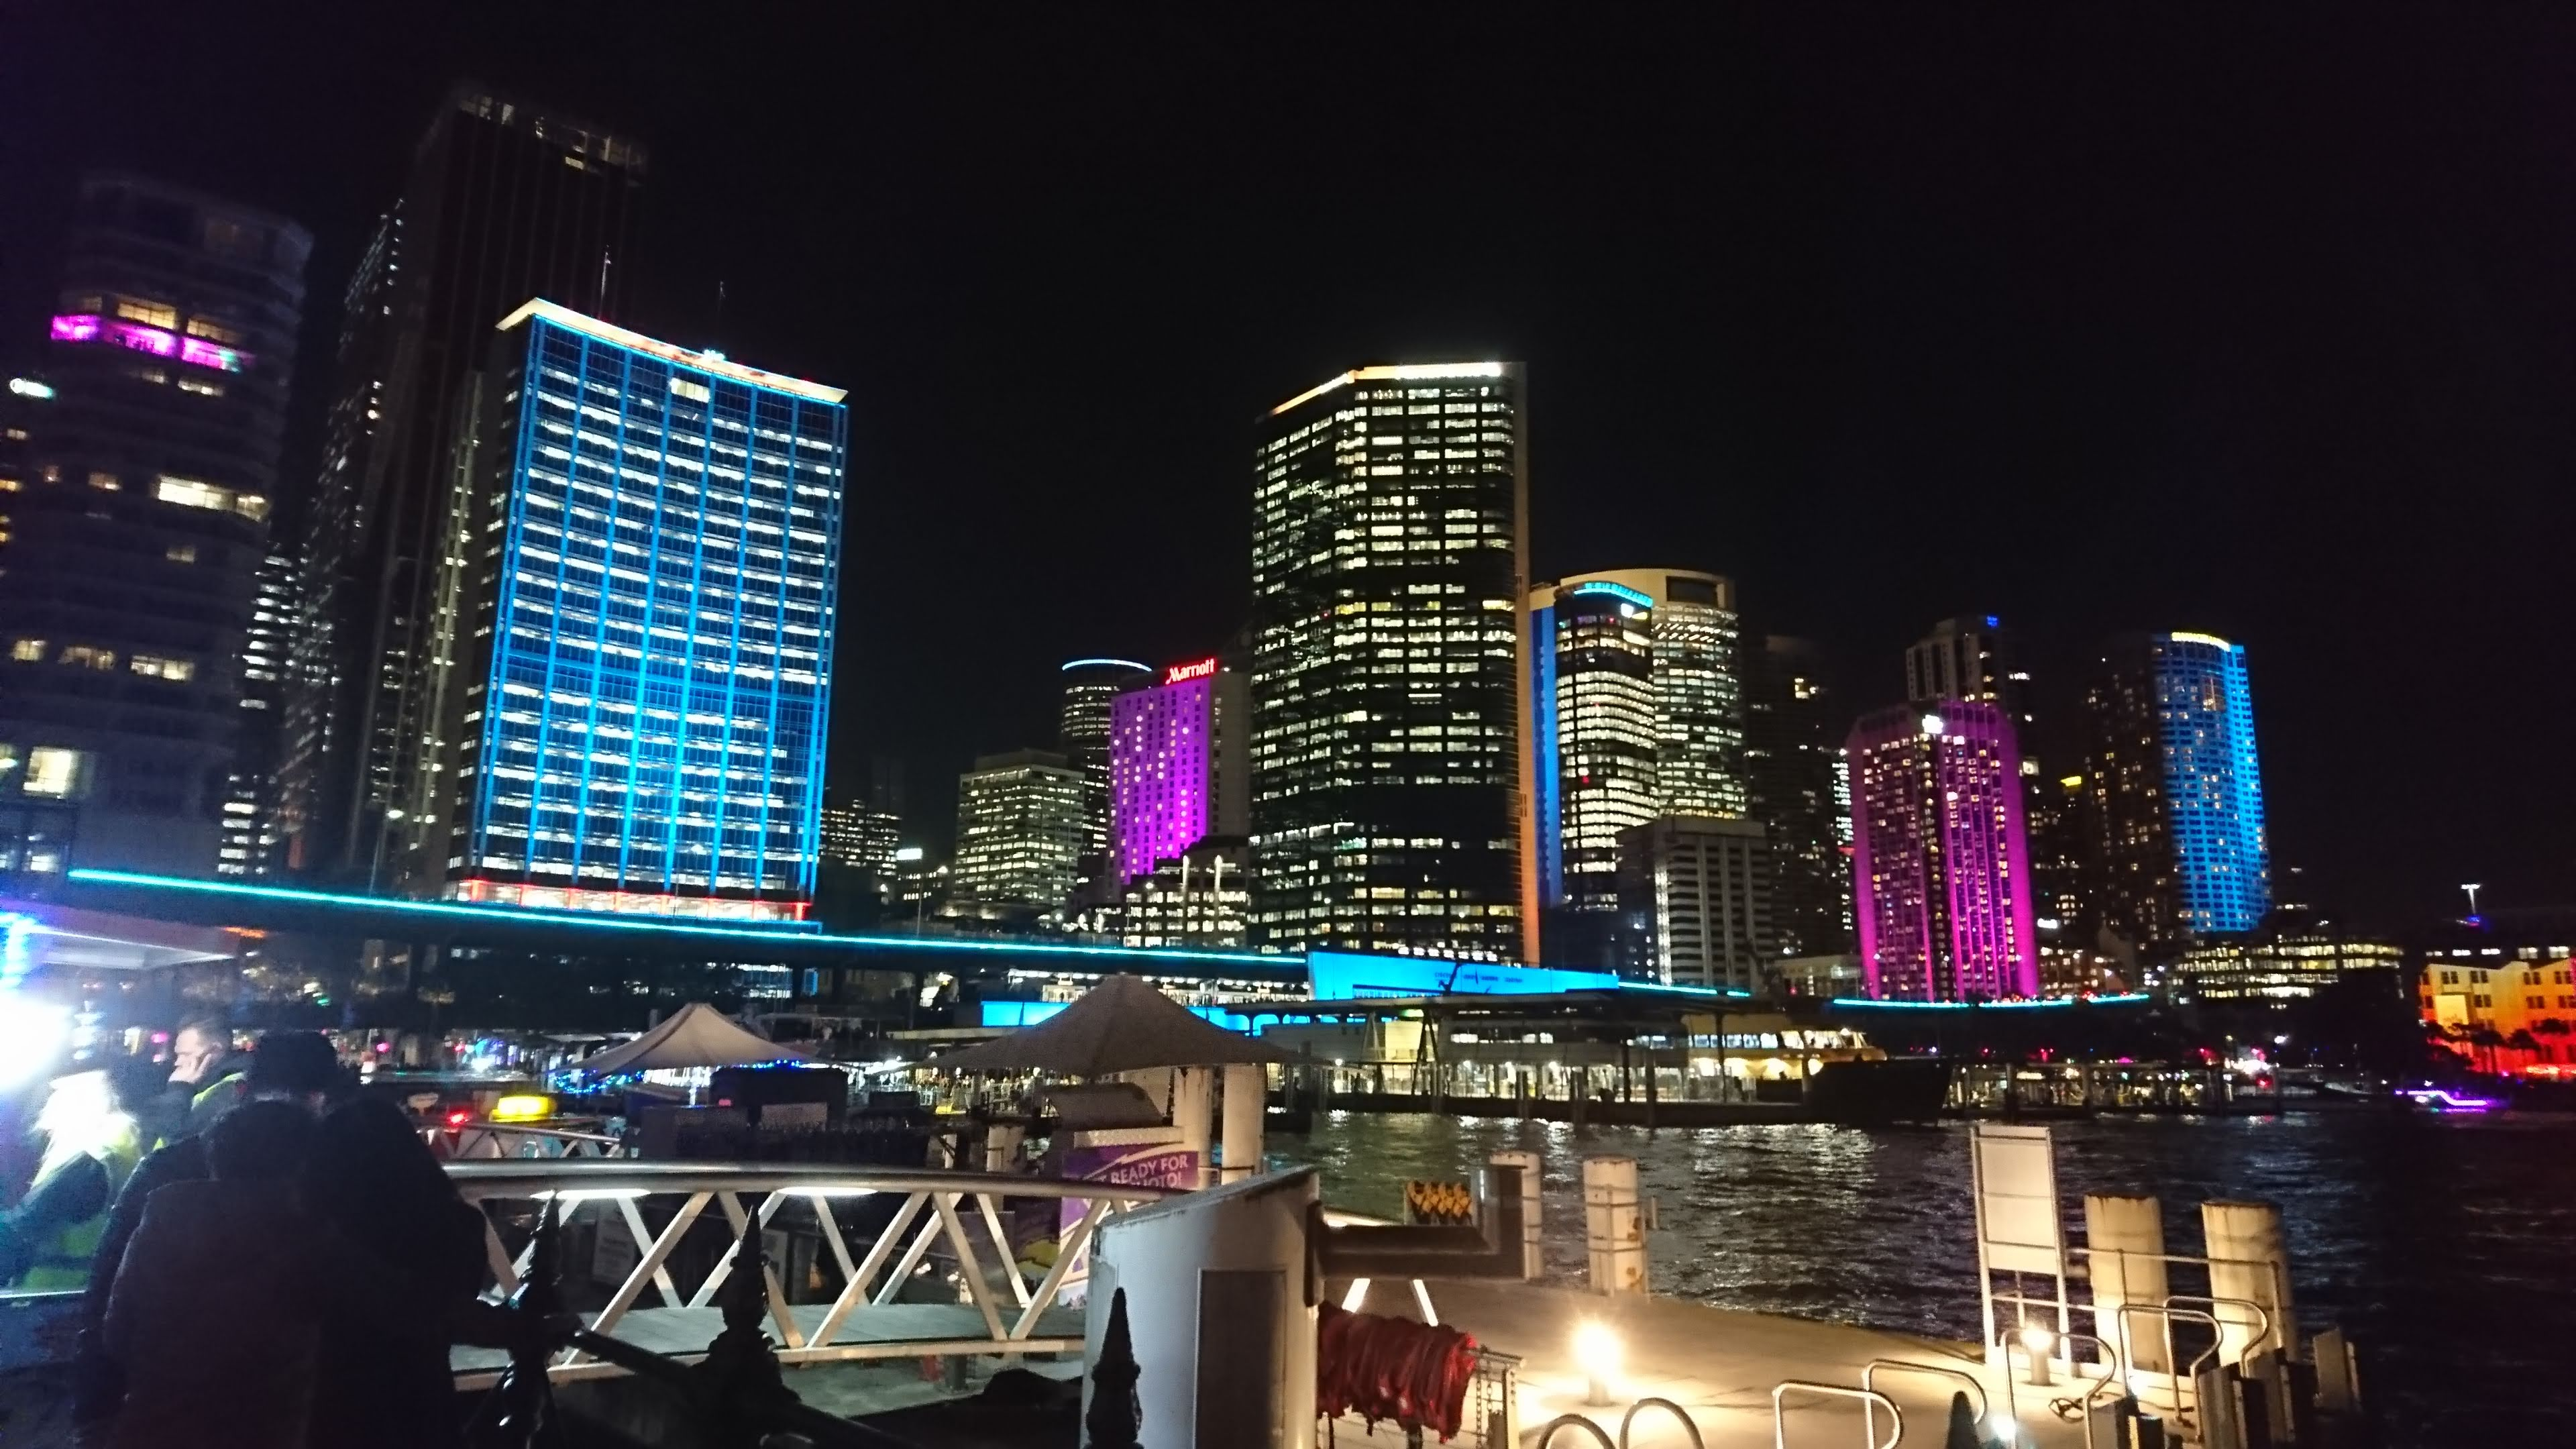 Sydney's skyline comes to life with it's huge display of lighting and laser beams